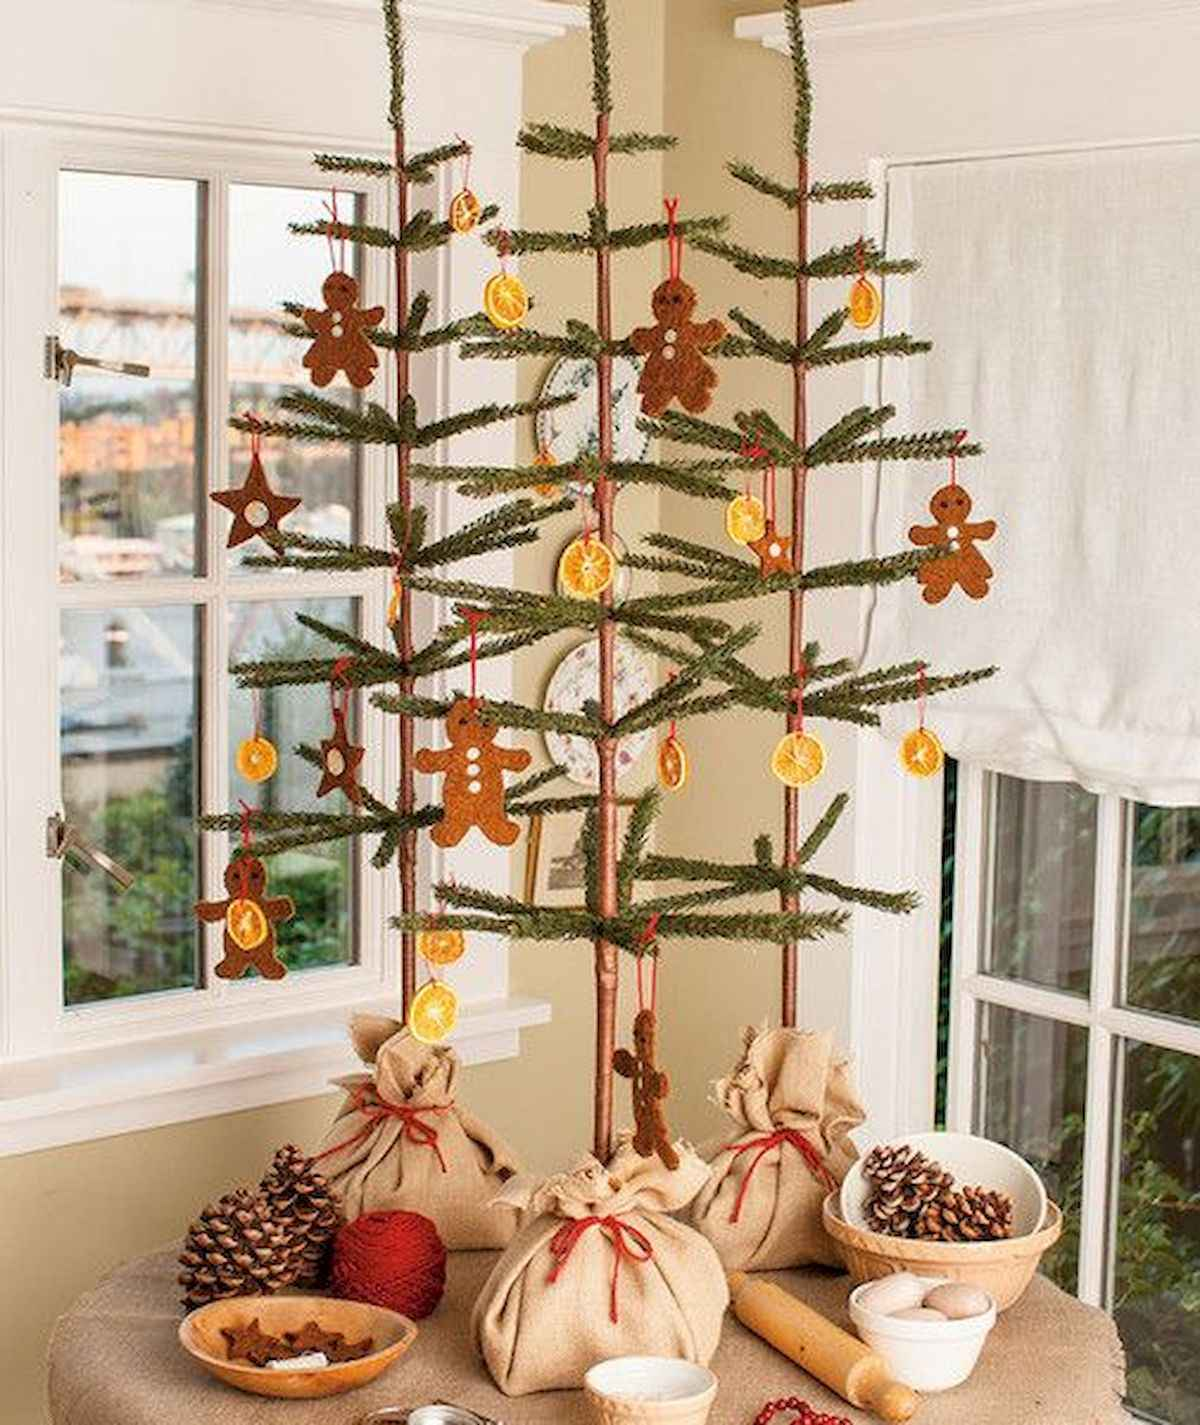 30 rustic and vintage christmas tree ideas decorations (17)